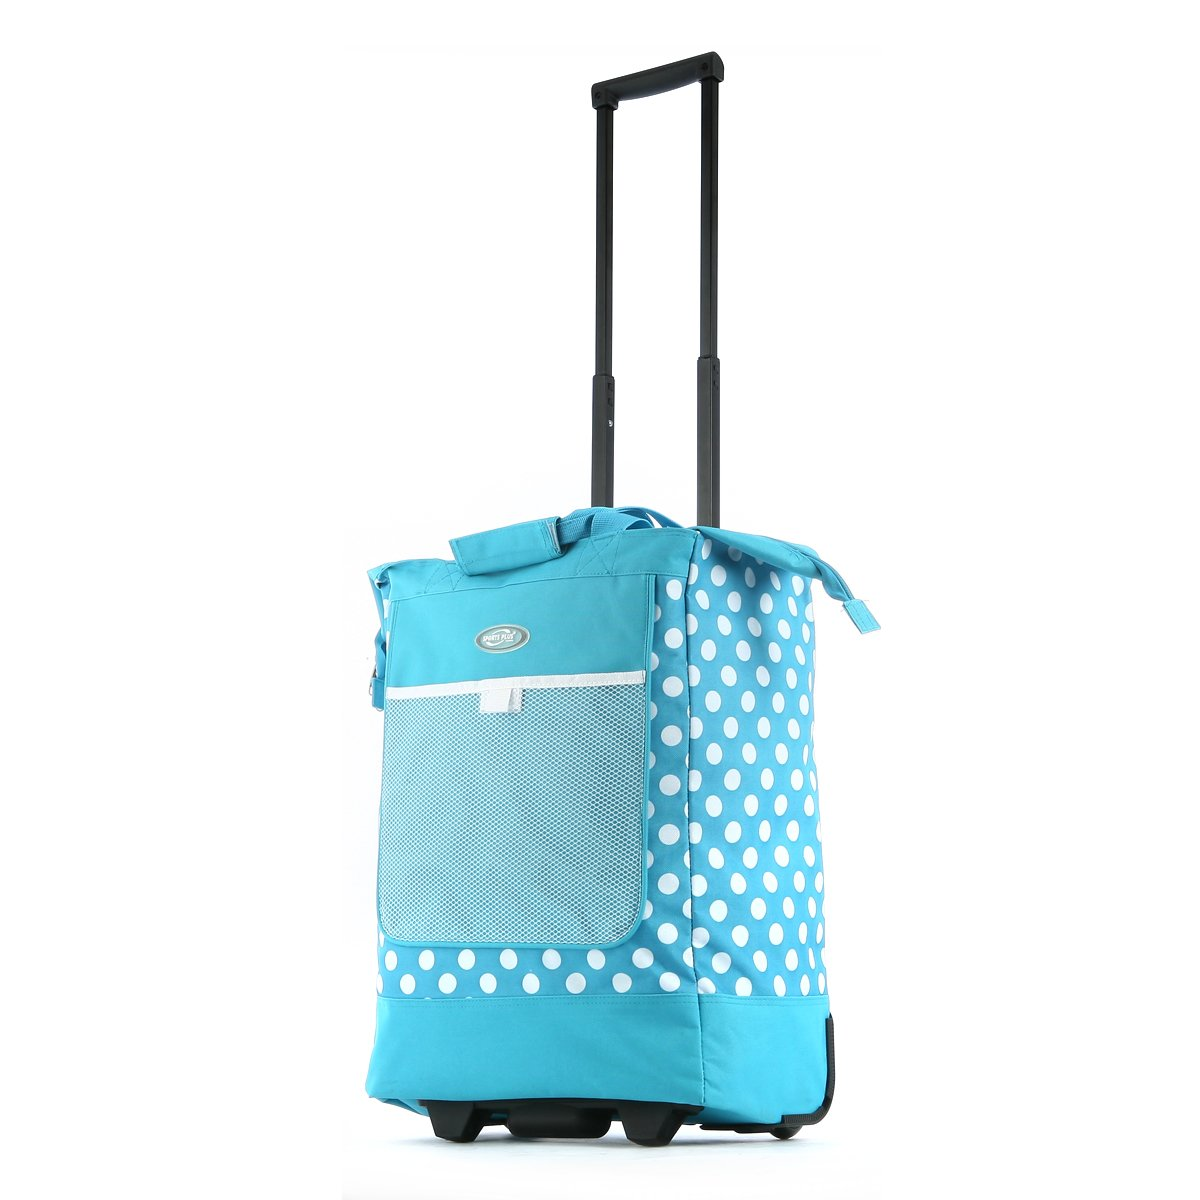 Olympia Luggage Rolling Printed Shopper Tote,Blue,One Size